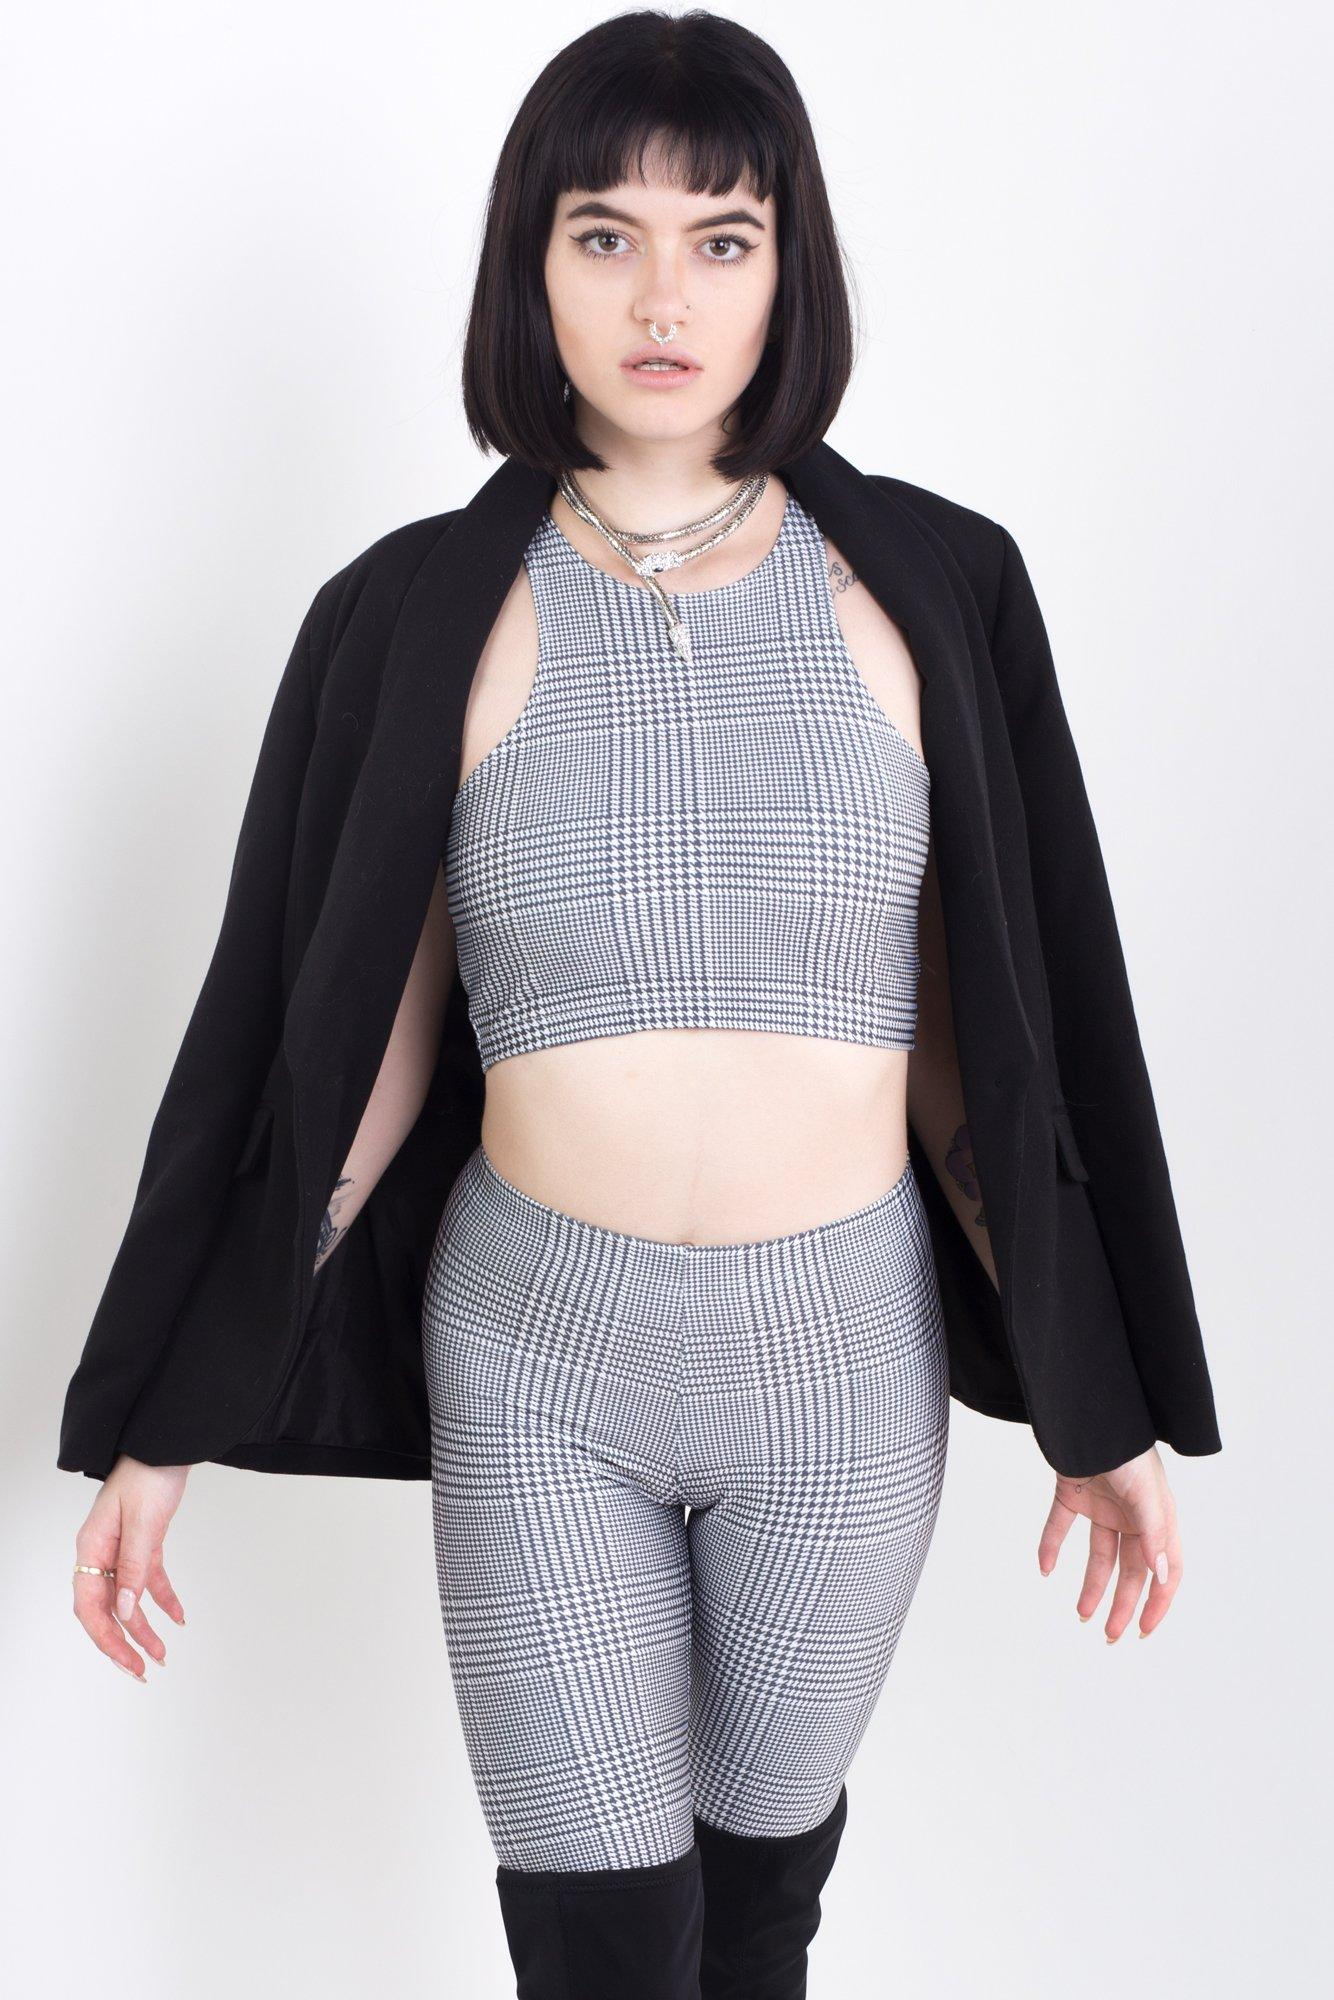 Black & White Business Plaid Racer Back Crop